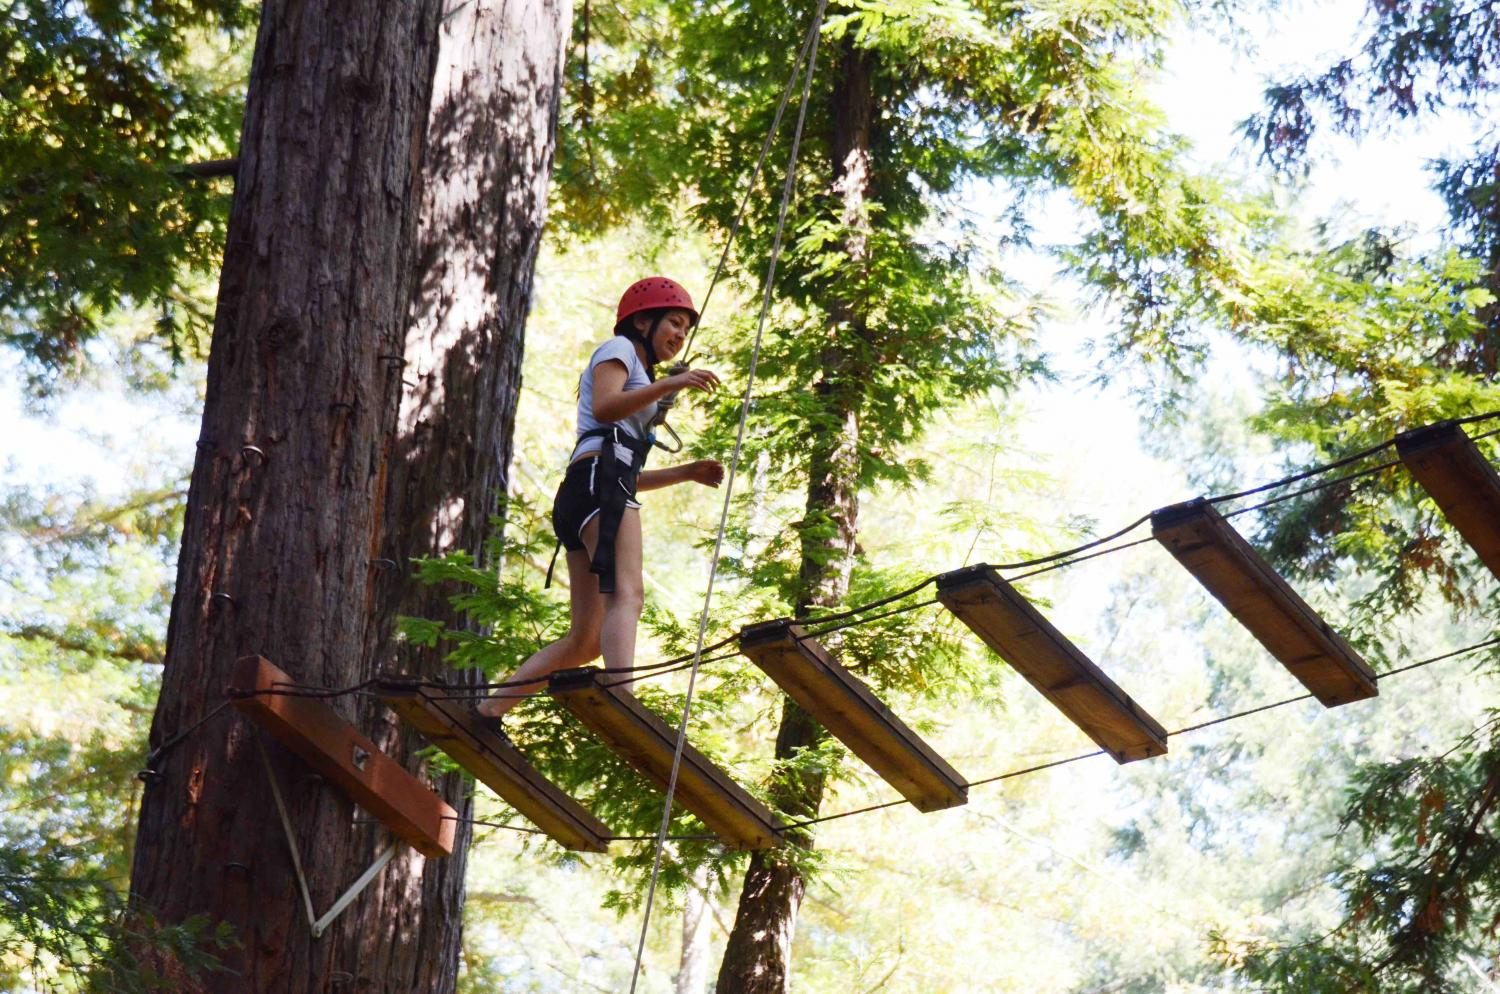 Reiya Das (10) crosses the Incomplete Bridge, a series of wooden planks strapped between two trees. This was one of many rope courses offered throughout the day.